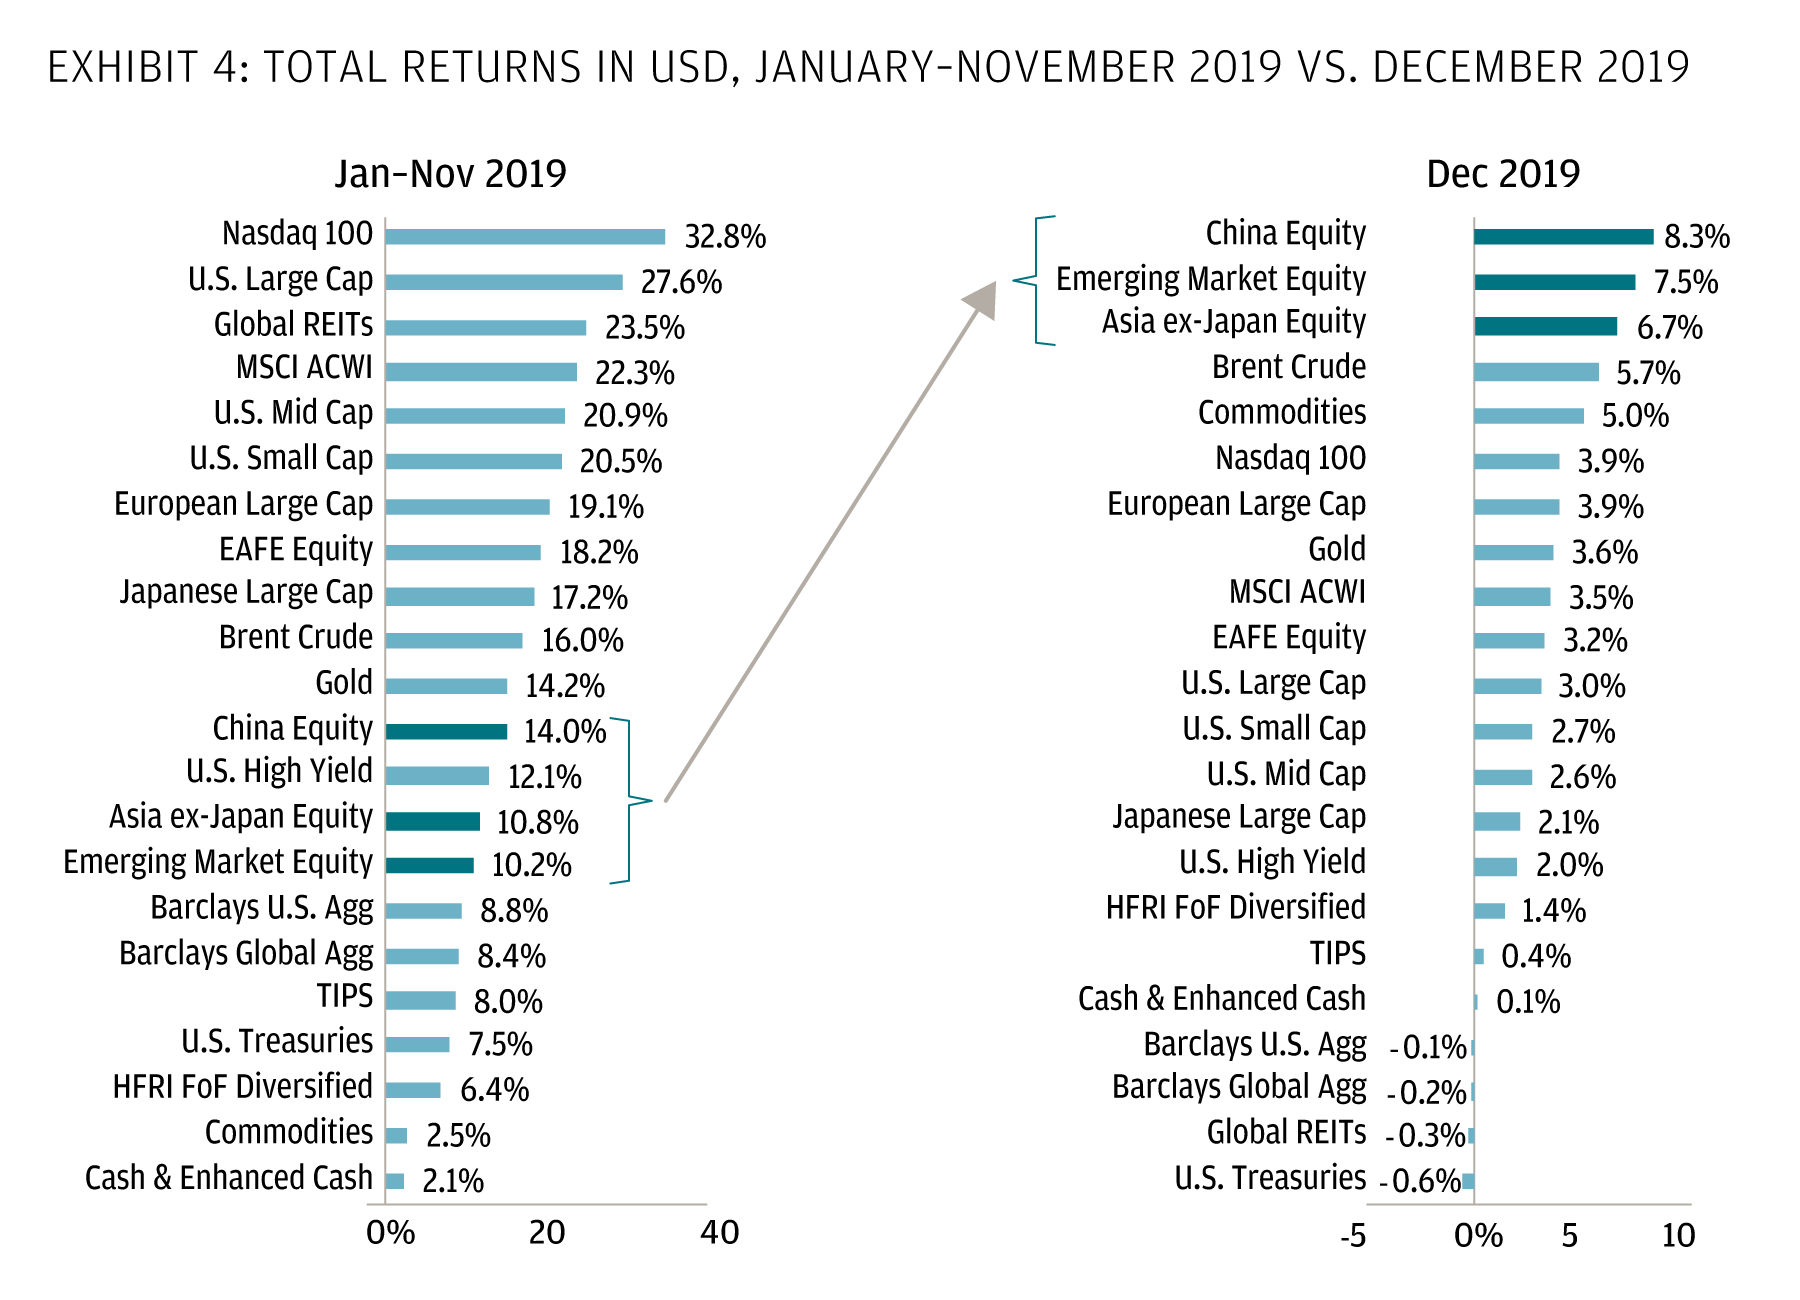 Total returns in 2019 in the global markets